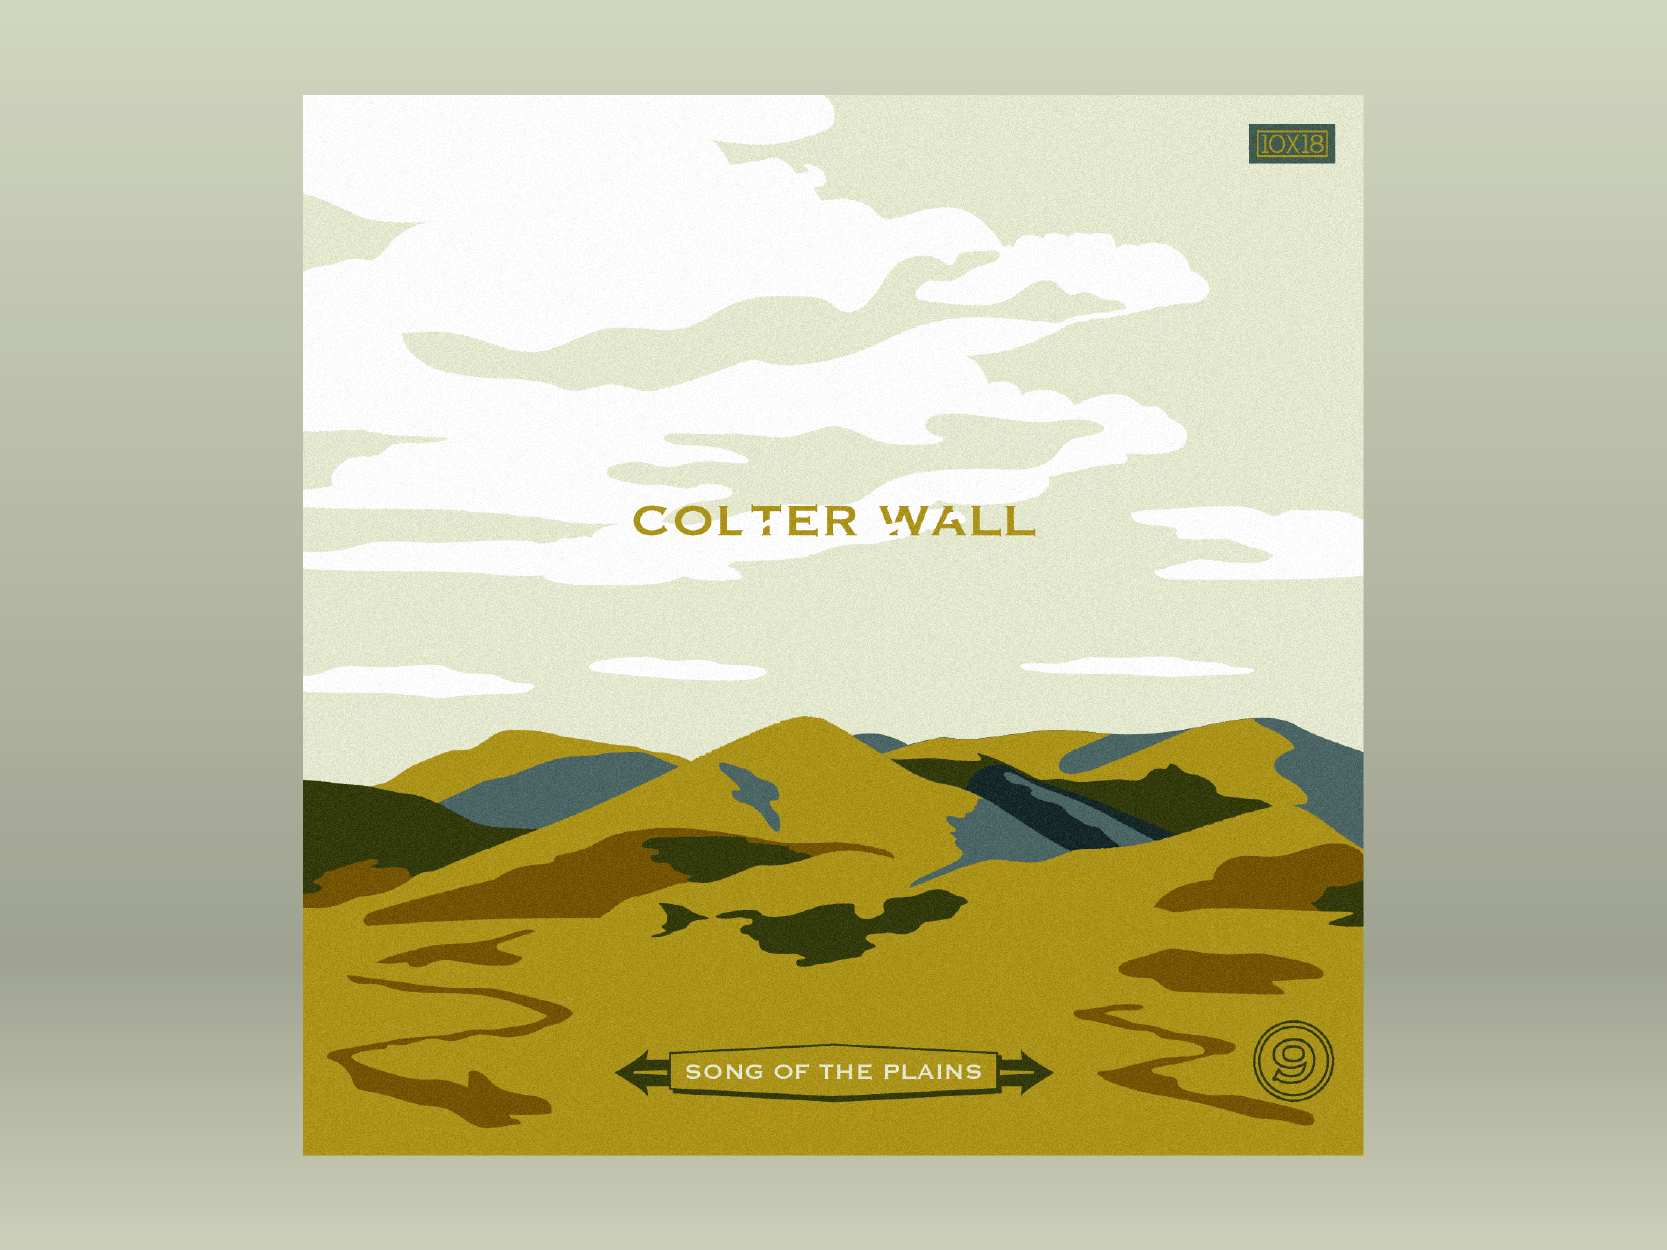 10x18 9 colter wall song of the plains wall songs on colter wall id=38837